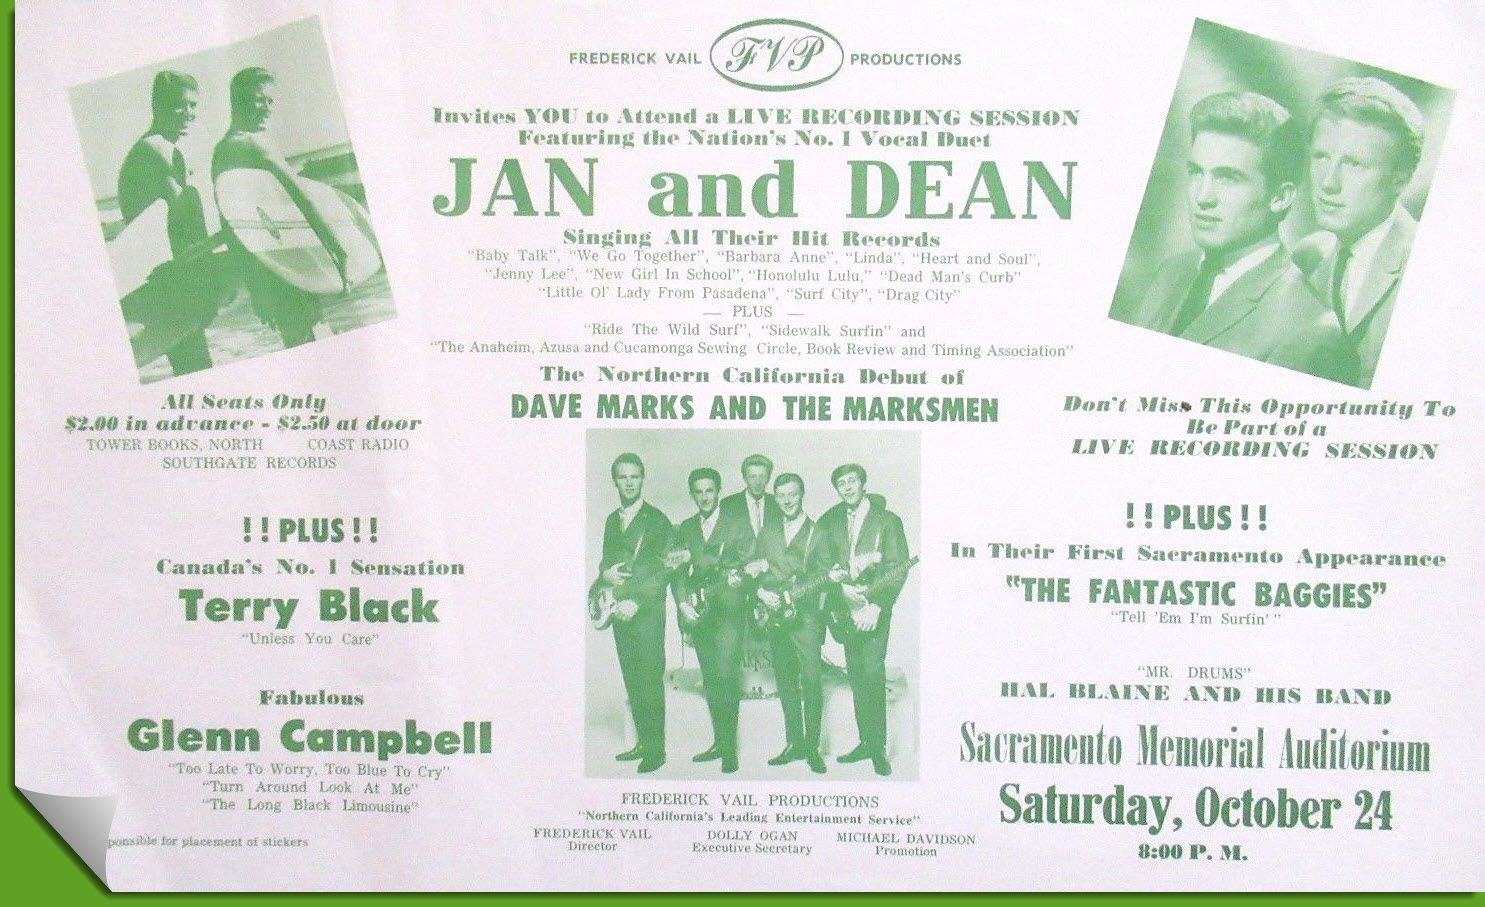 Jan and Dean Concert_Glen Campbell_Sacramento_Oct 24 1964-gcf.jpg